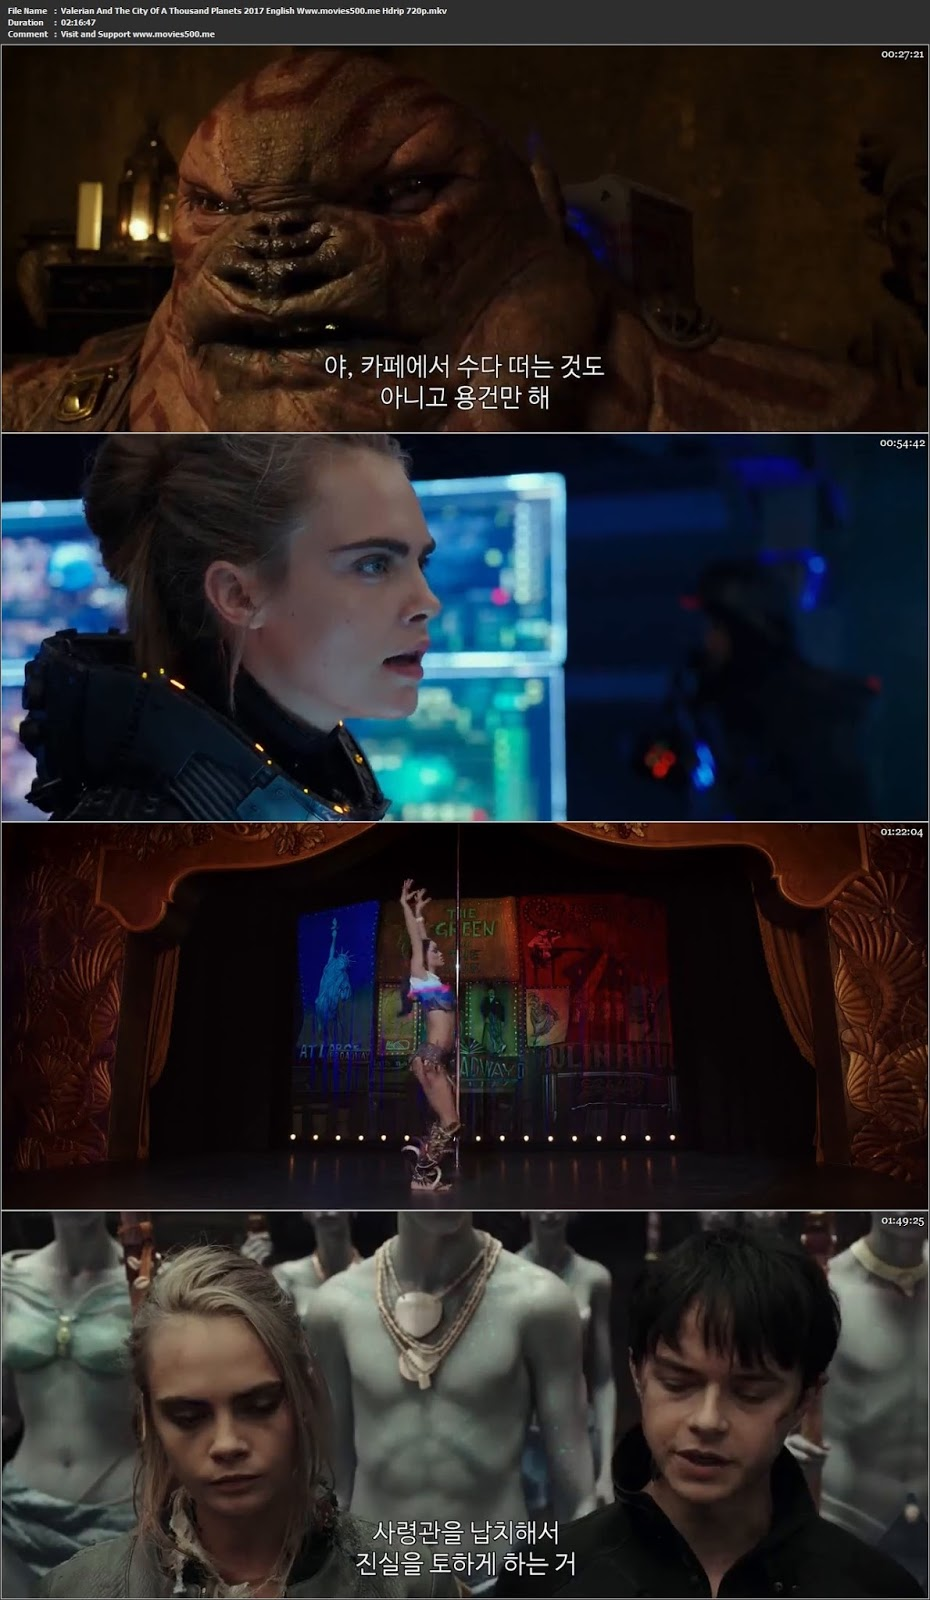 Valerian And The City Of A Thousand Planets 2017 English HDRip 720p at movies500.site